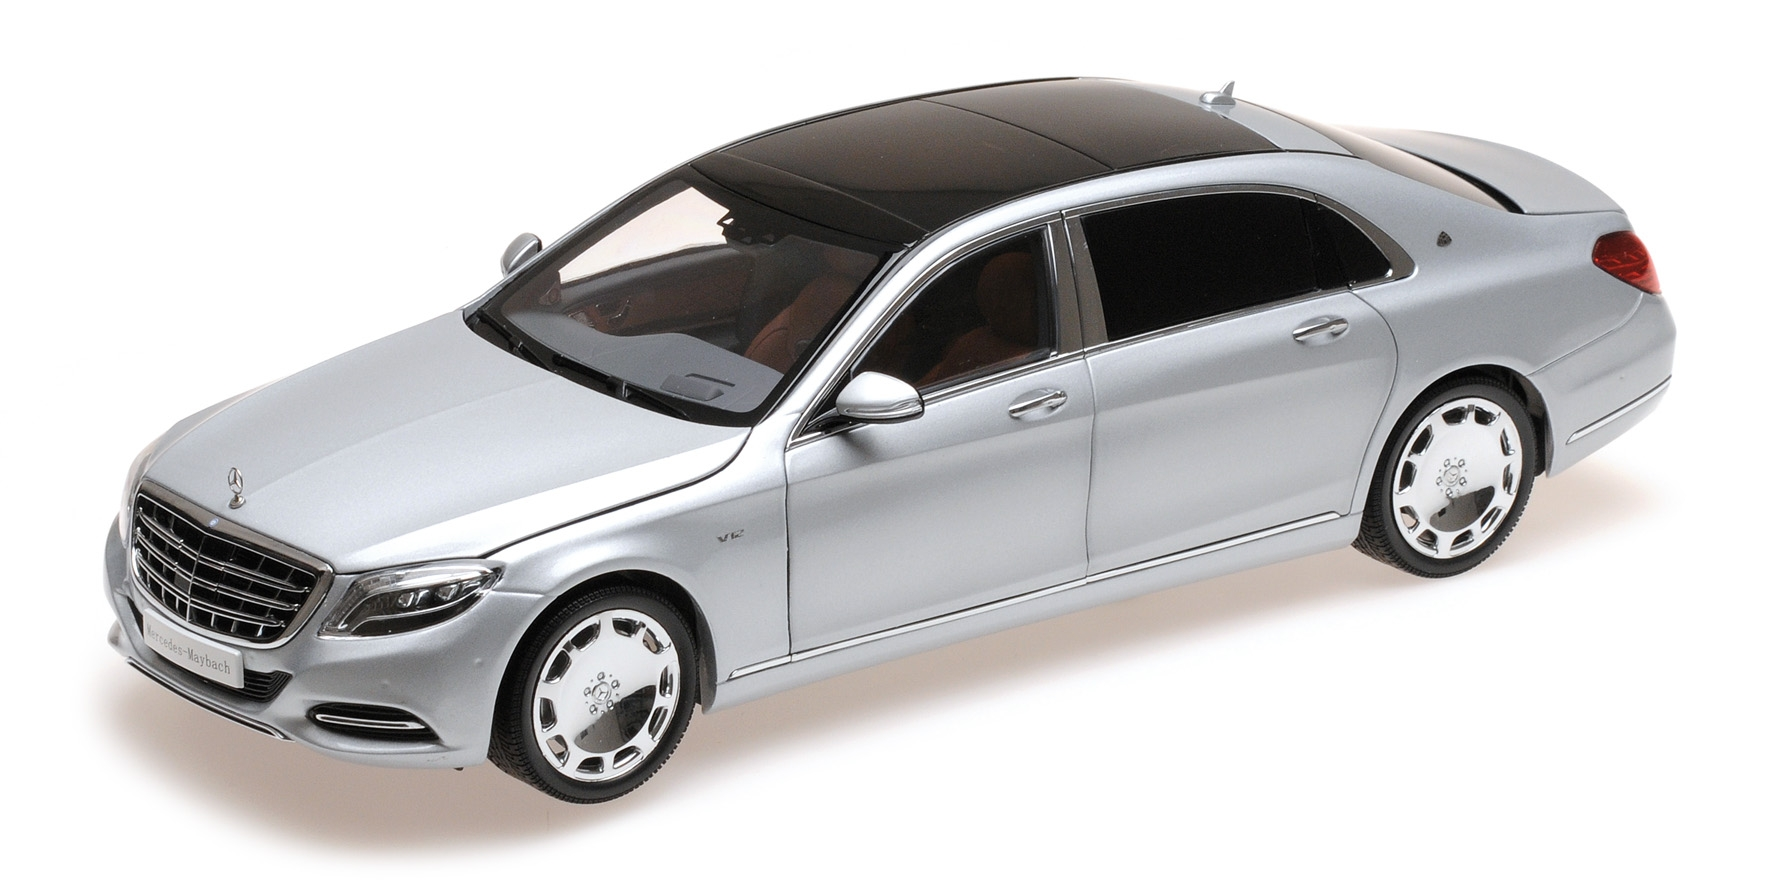 Mercedes-Maybach S-Class 2016 iridium silver 1:18 Almost Real